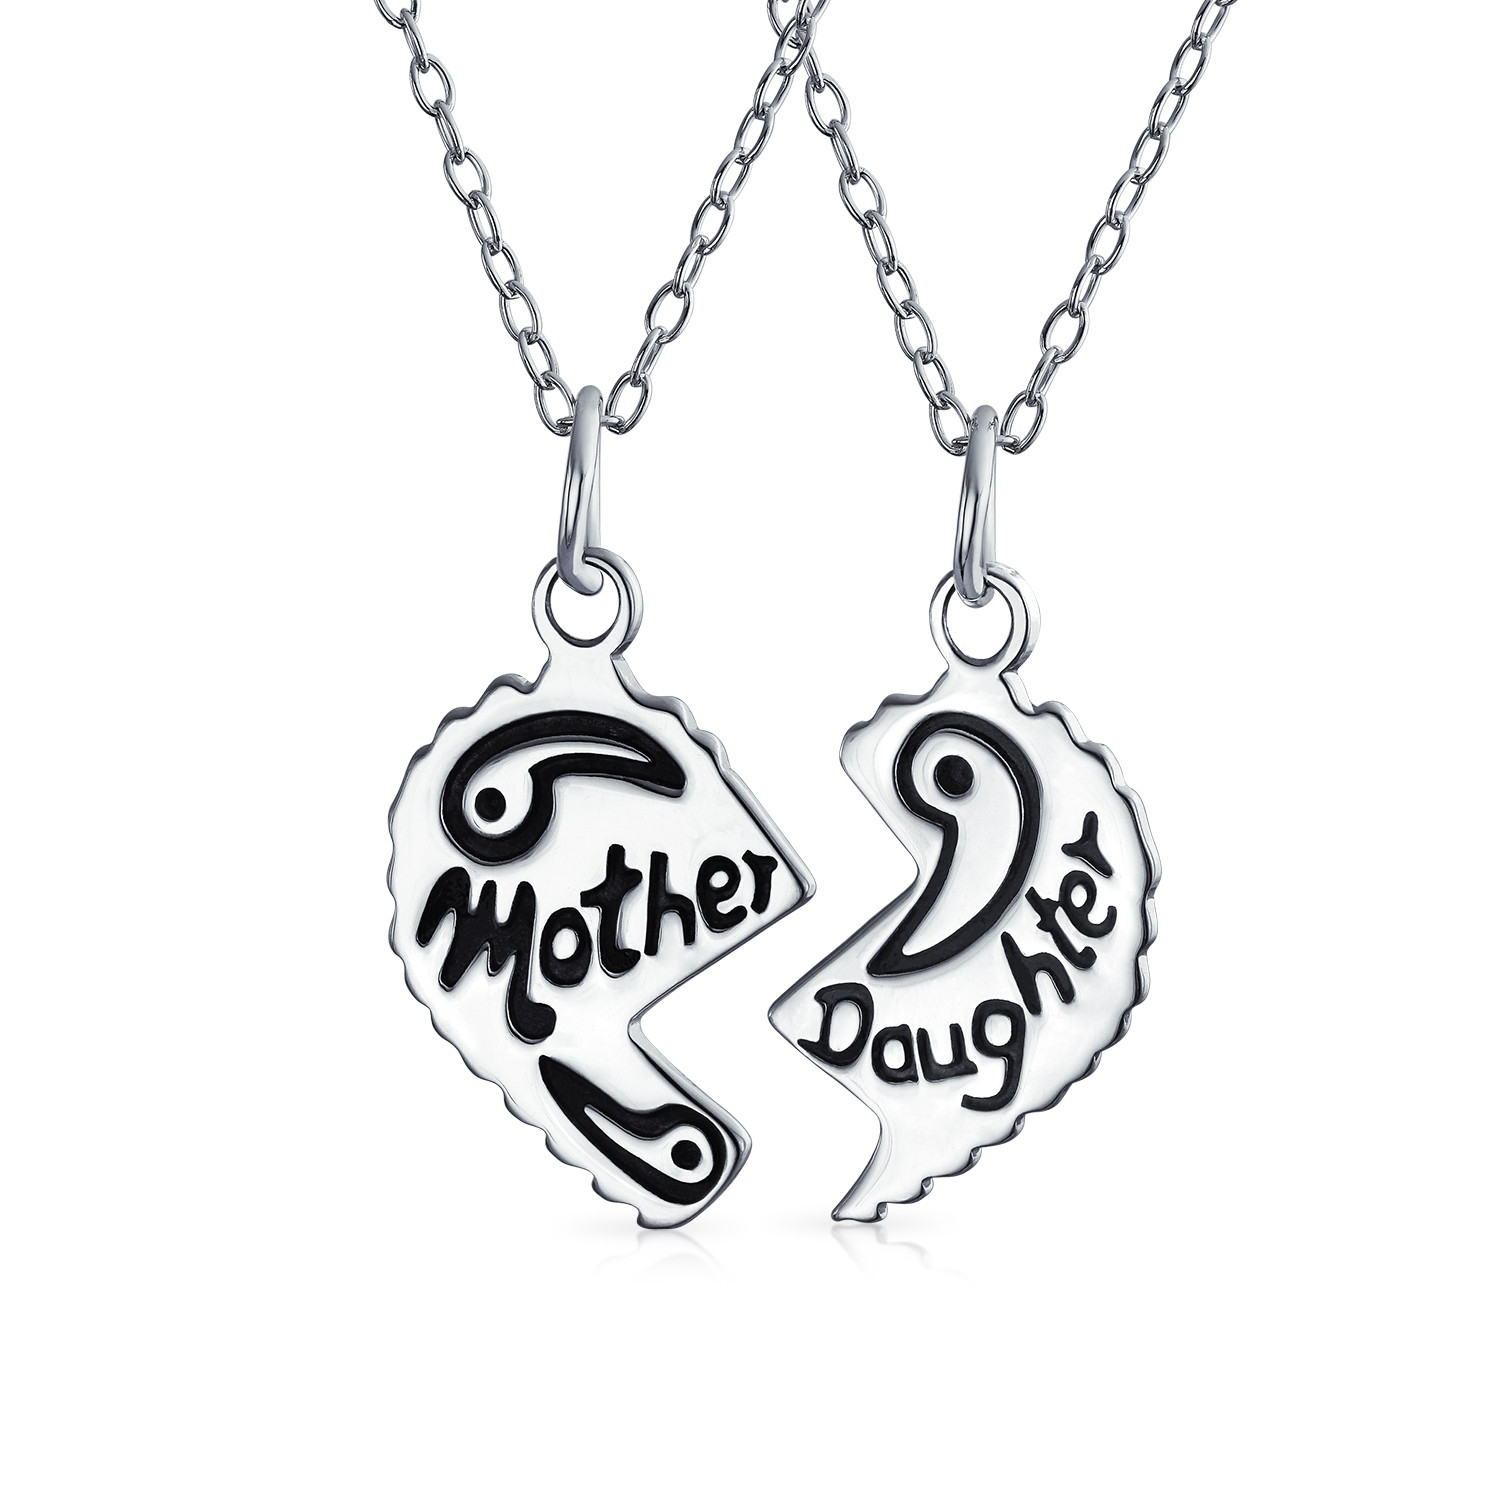 pendants mother motherhood and fit necklace pearl hei heart fmt ed jewelry necklaces tiffany to id pendant in wid double of constrain return